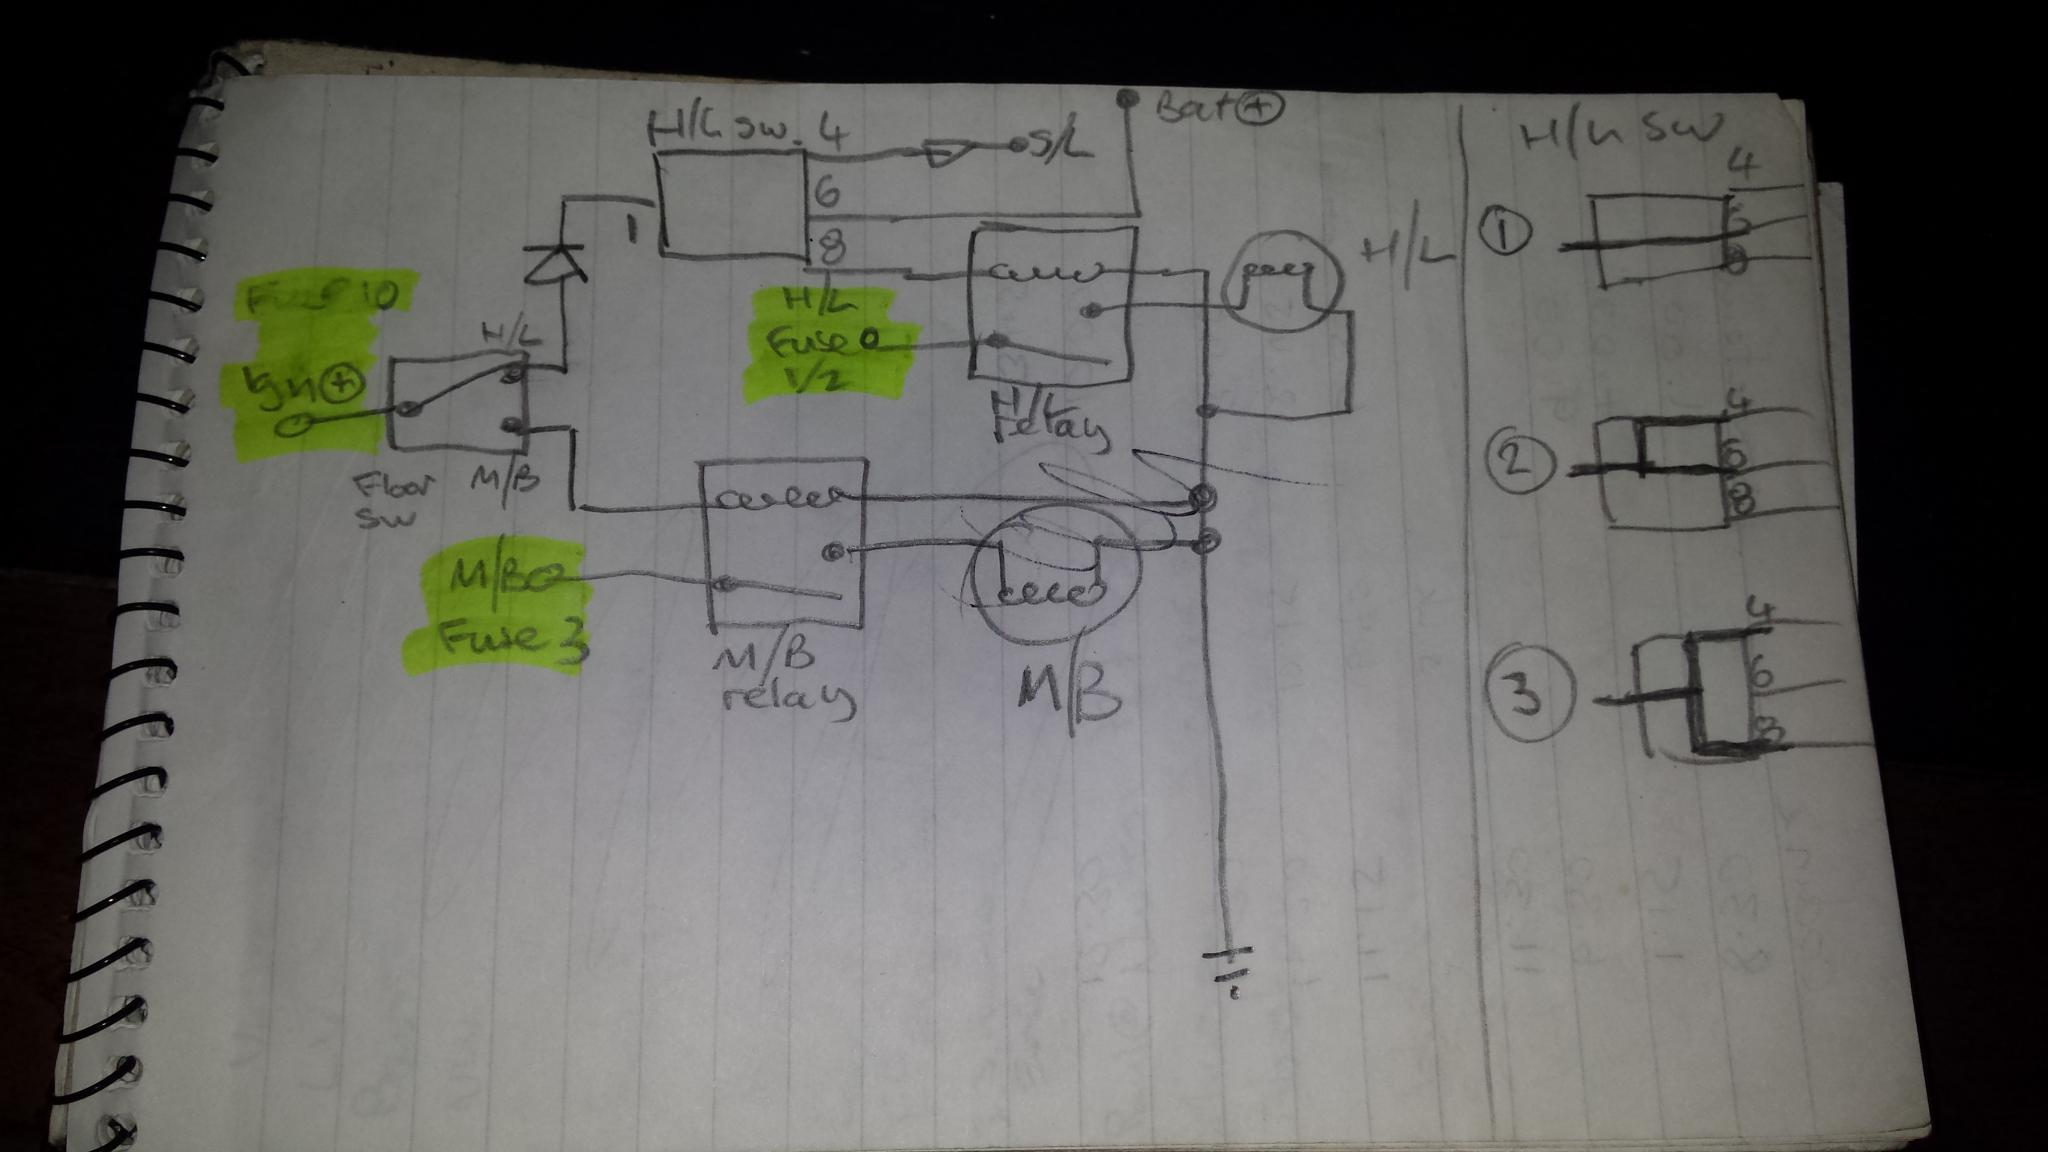 Electrical Micra Mini Project Bmw Wiring Diagram Spaghetti Second The Wipers Didnt Work At All And Kept Blowing Fuses This Time My Design Was Right But Id Messed Up Implementation Two Wires Were Reversed